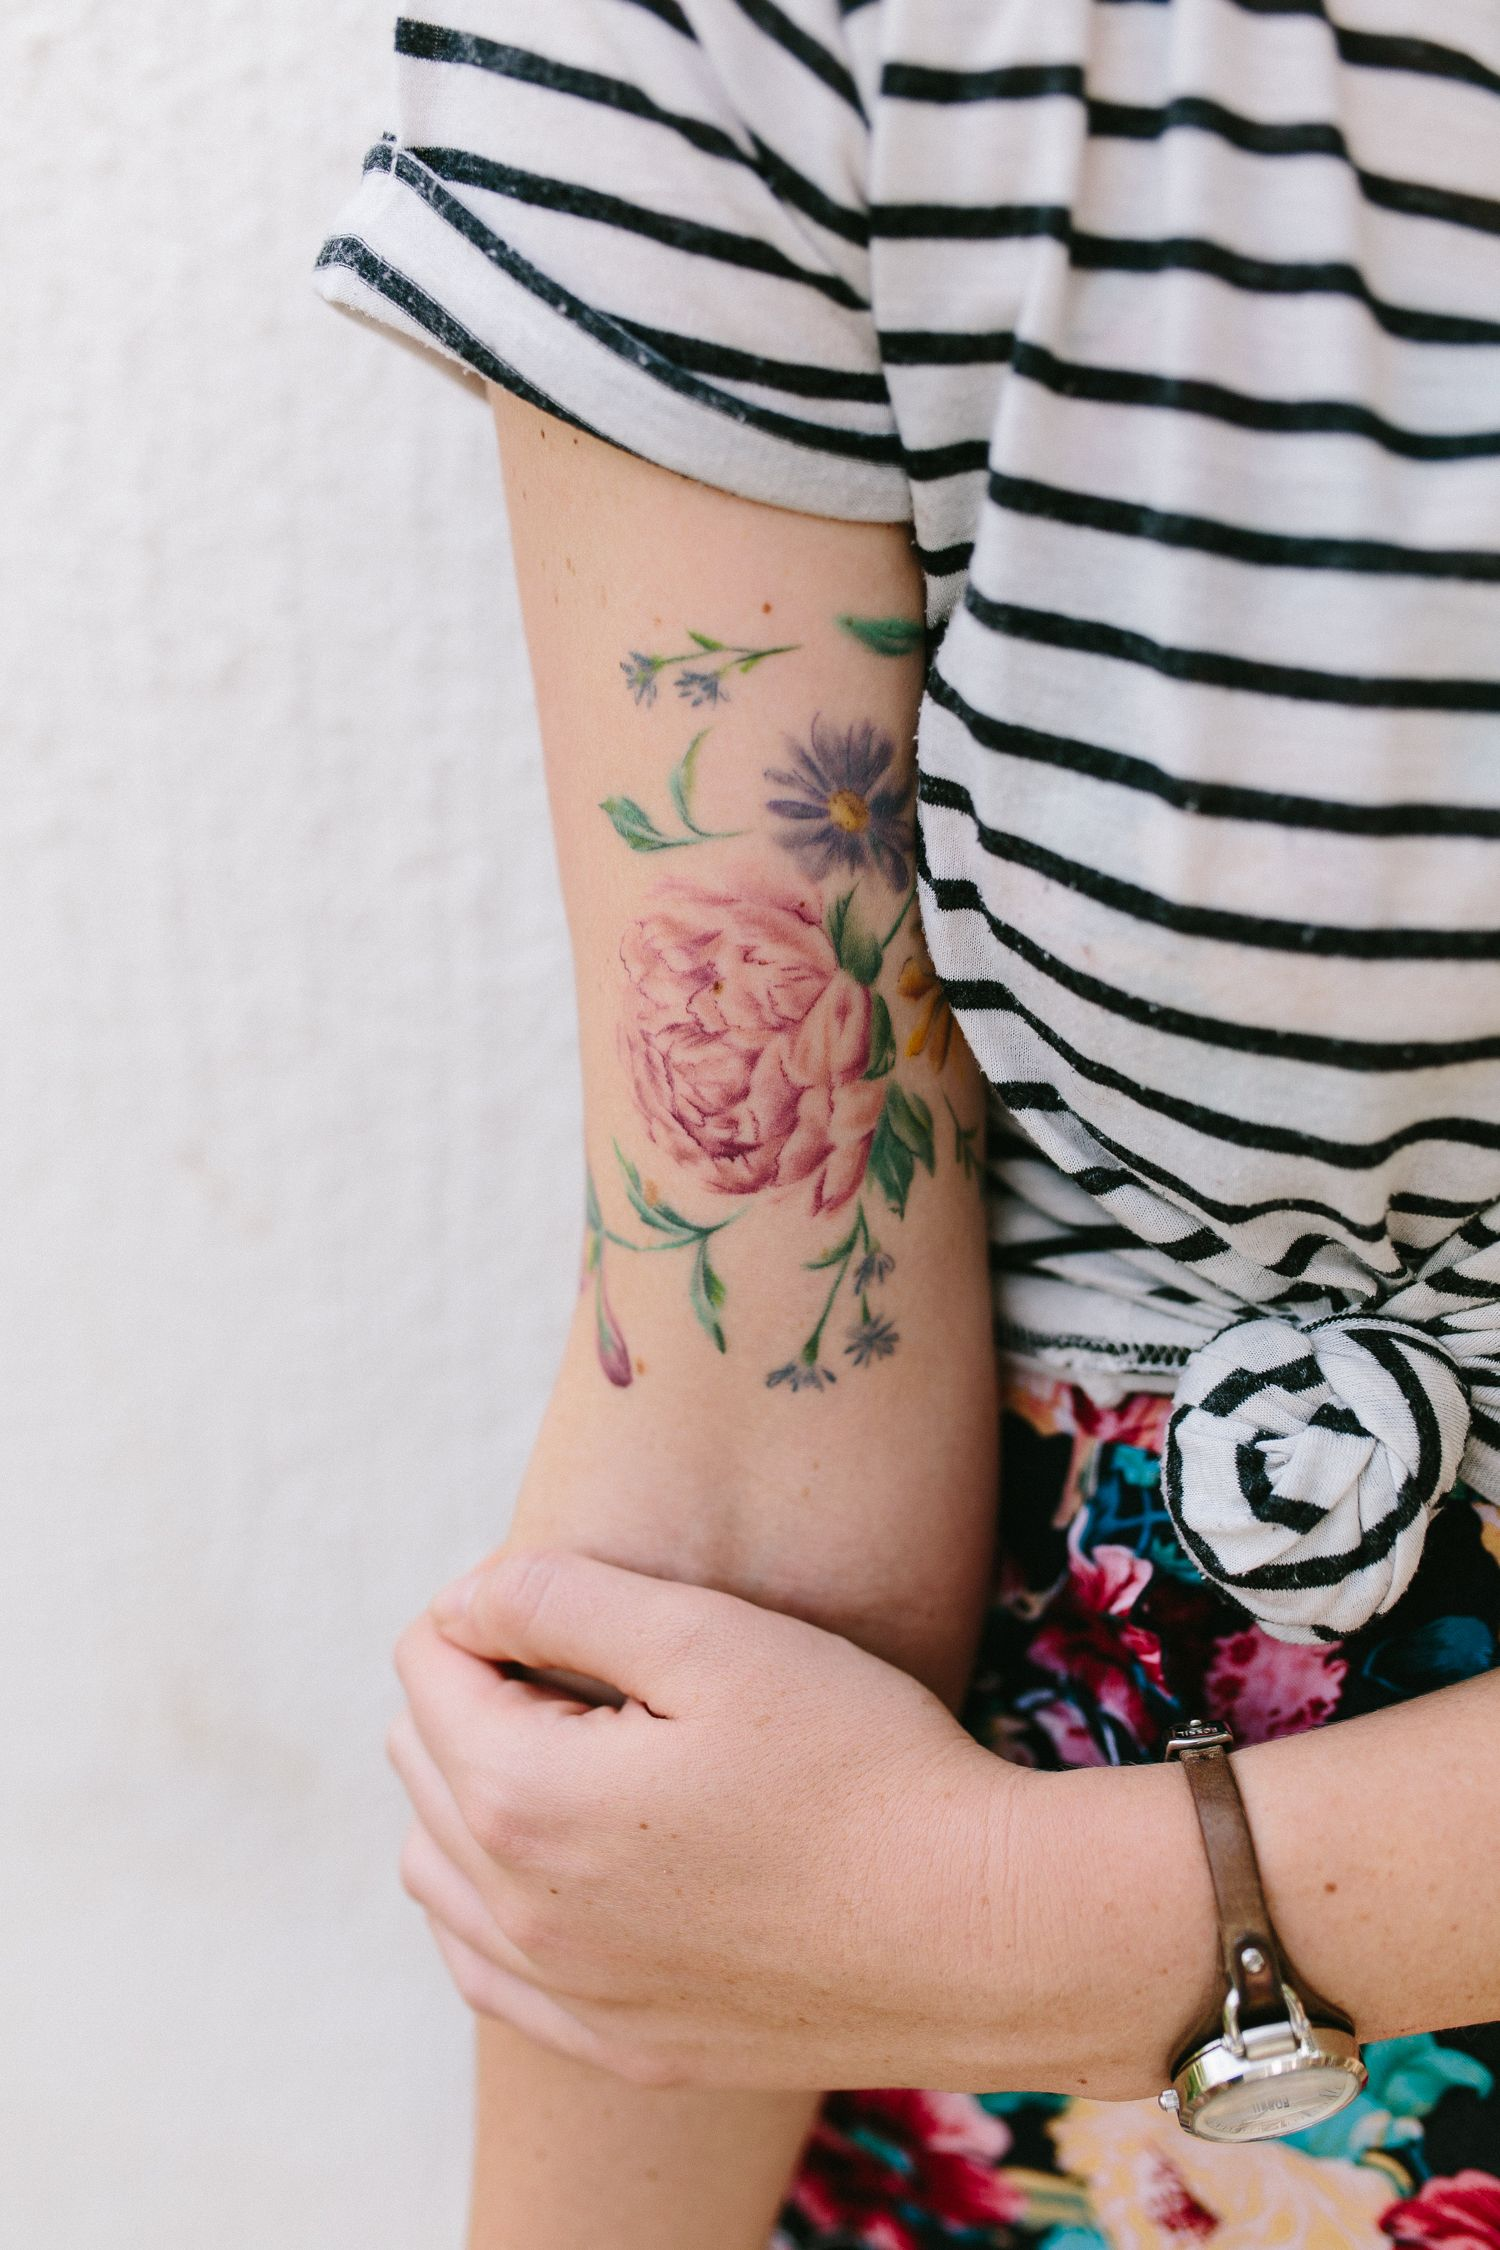 Colorful Floral Tattoos Fitted into Geometric Shapes